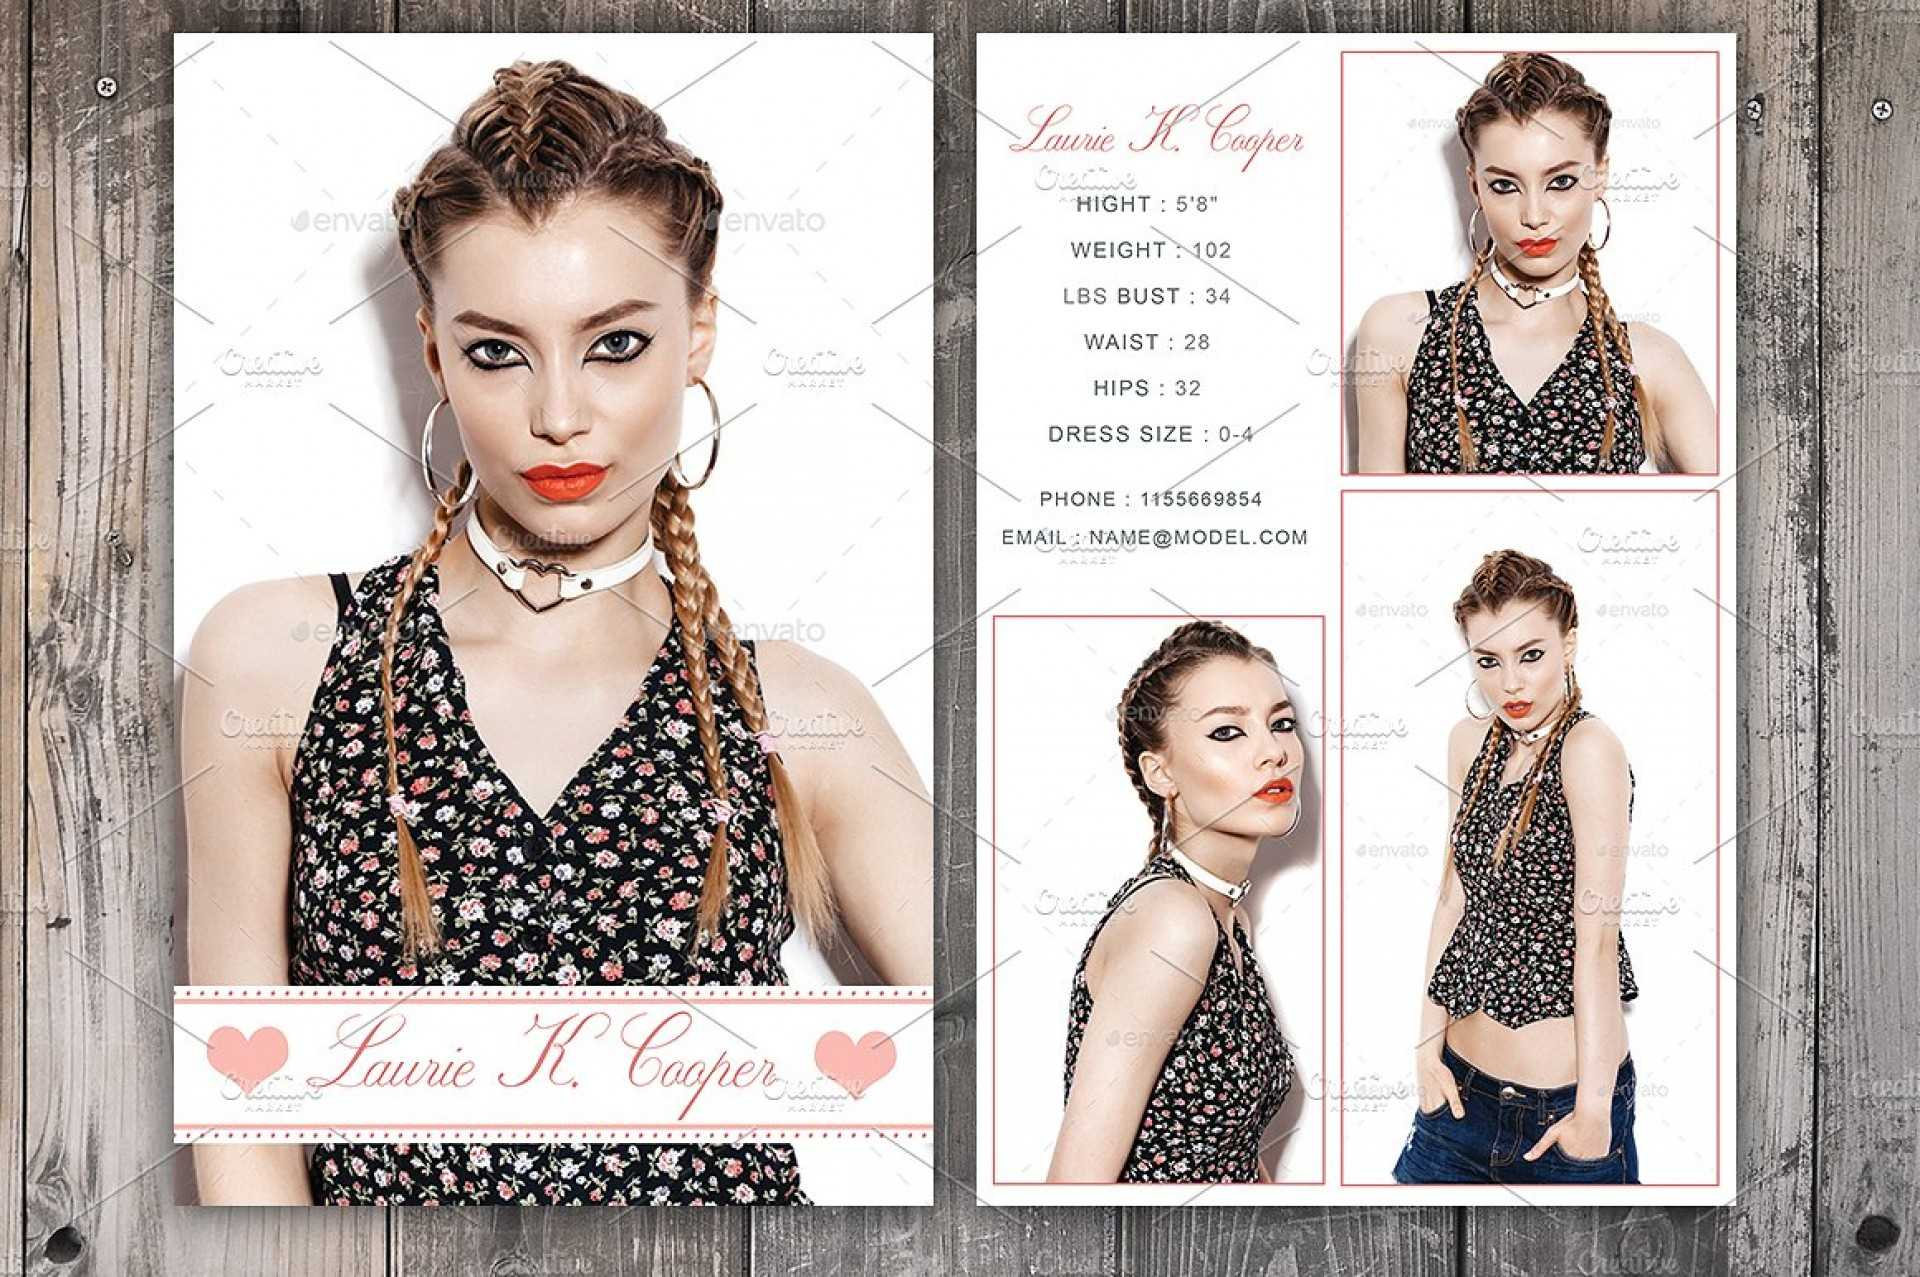 Free Model Comp Card Templates - C Punkt With Comp Card Template Psd